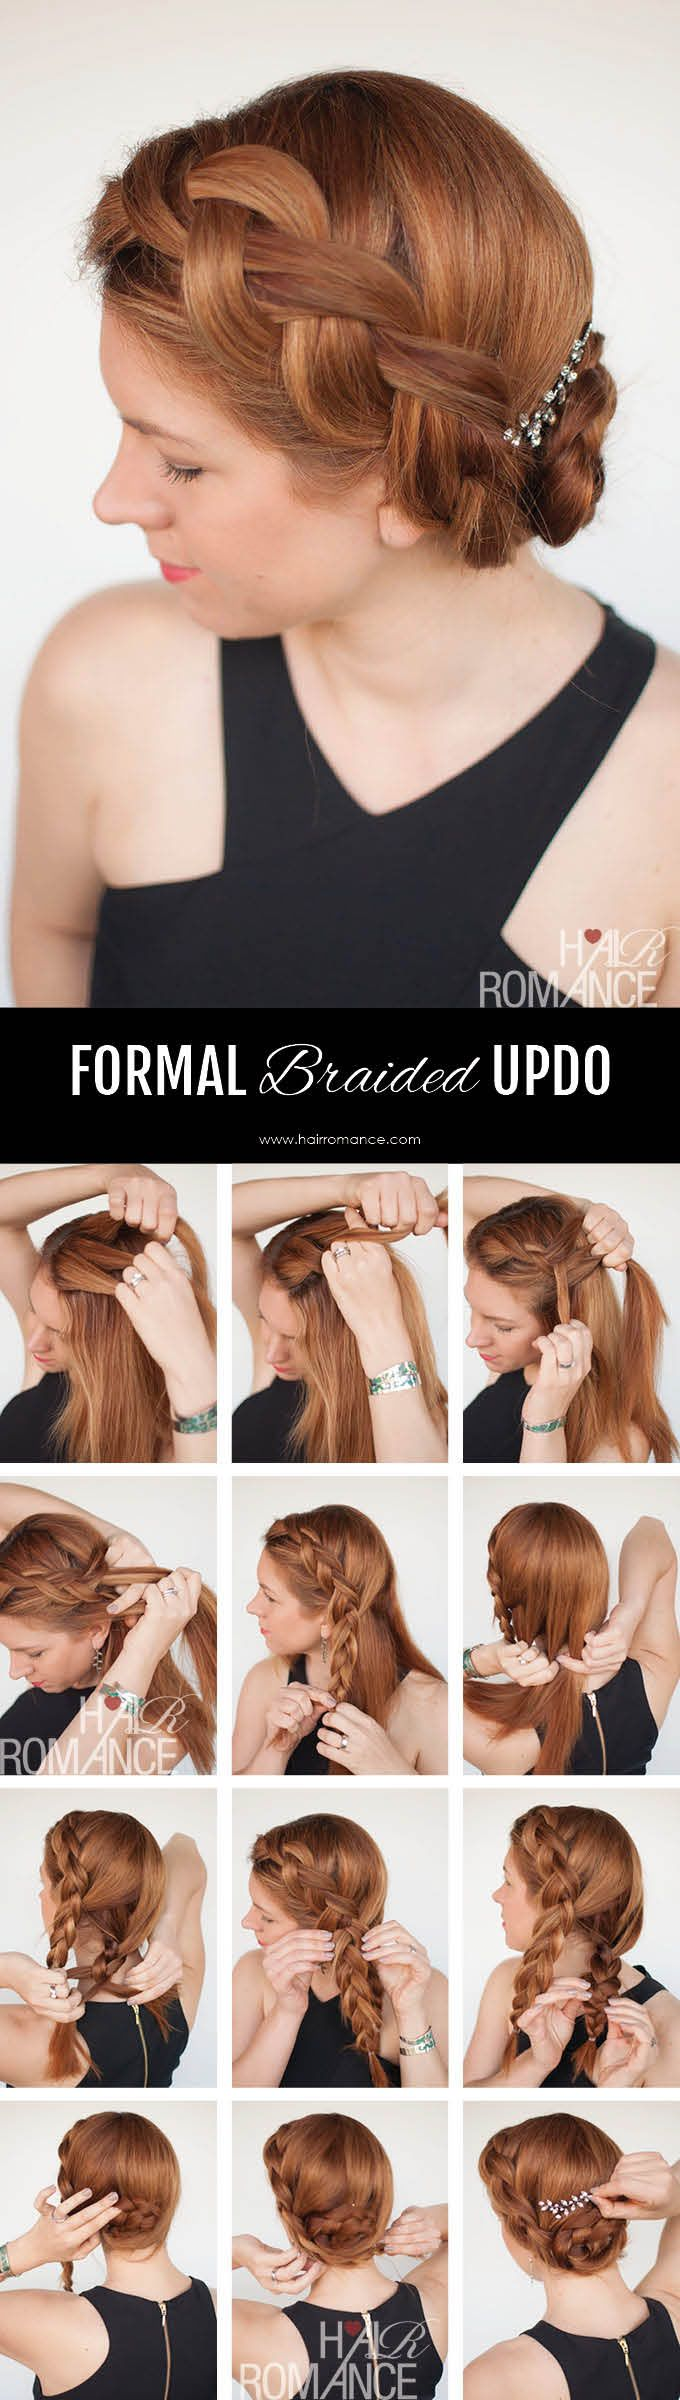 Try this diy braided updo for your next formal event or your